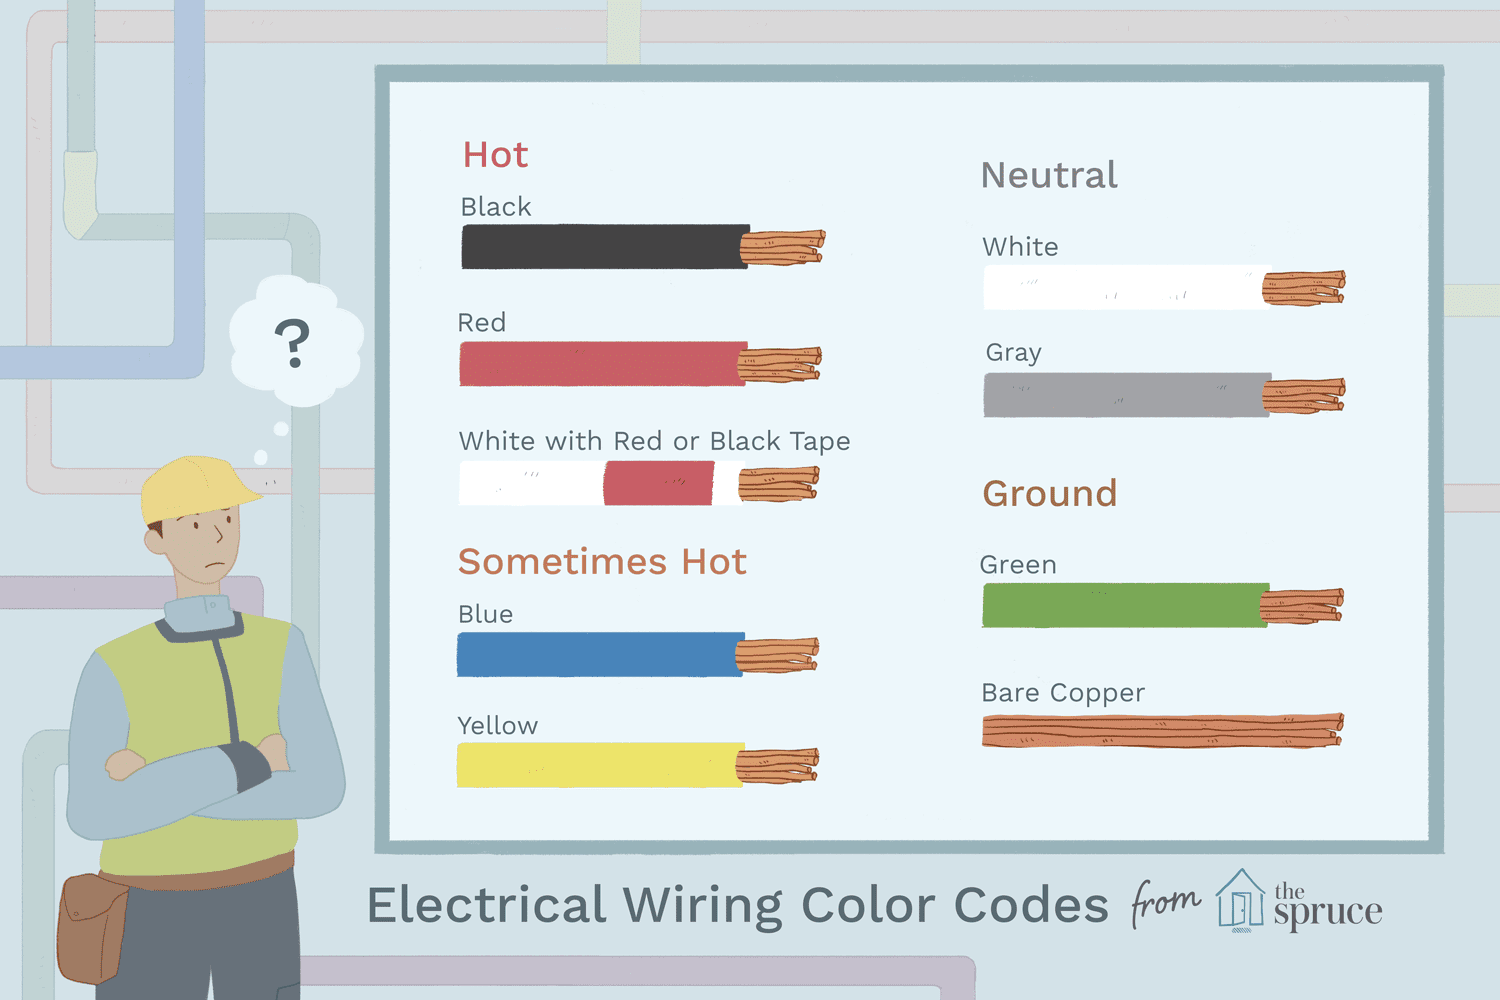 Electrical Wiring Color Coding System Regulations Allow You To Convert Any Plug Socket On The Circuit